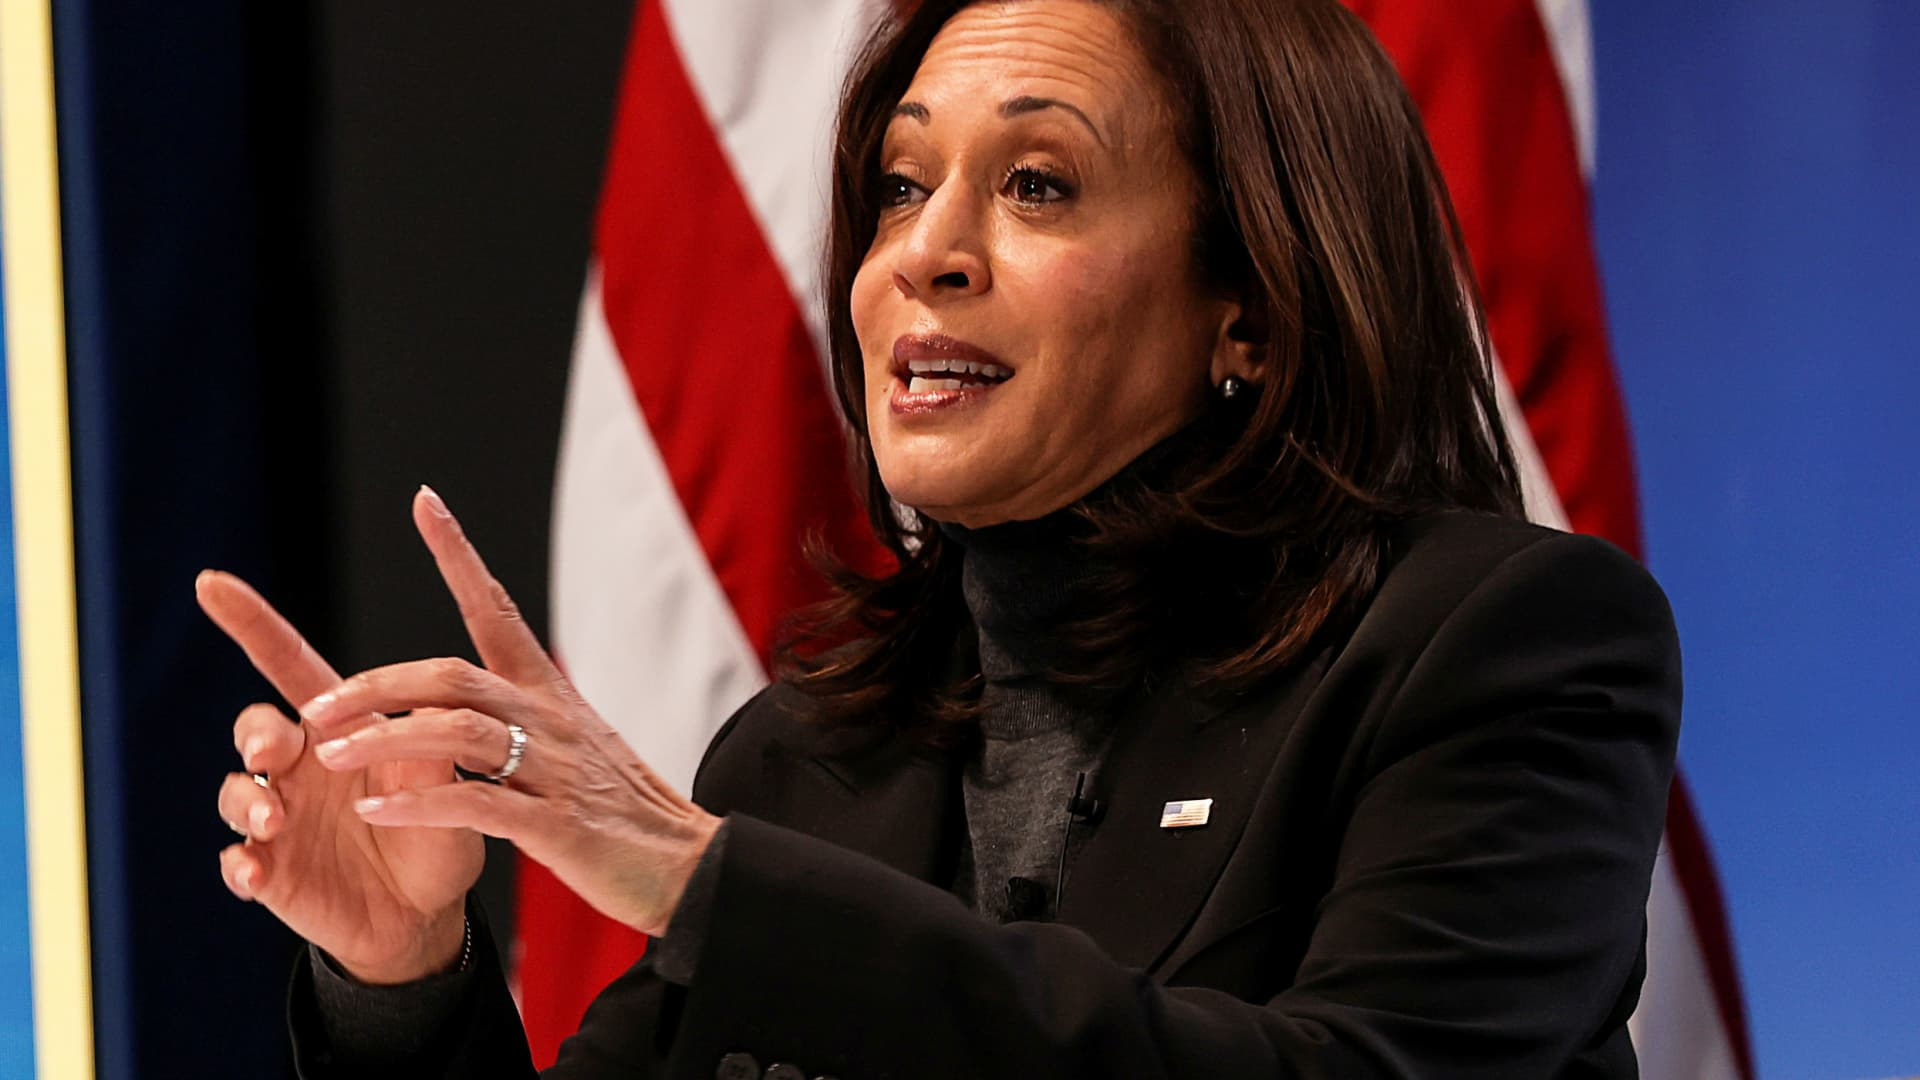 Vice President Kamala Harris speaks during a virtual town hall with female congressional lawmakers and women leaders to discuss the administration?s ongoing coronavirus disease (COVID-19) response and the importance of passing coronavirus aid legislation at the White House in Washington, U.S., February 18, 2021.